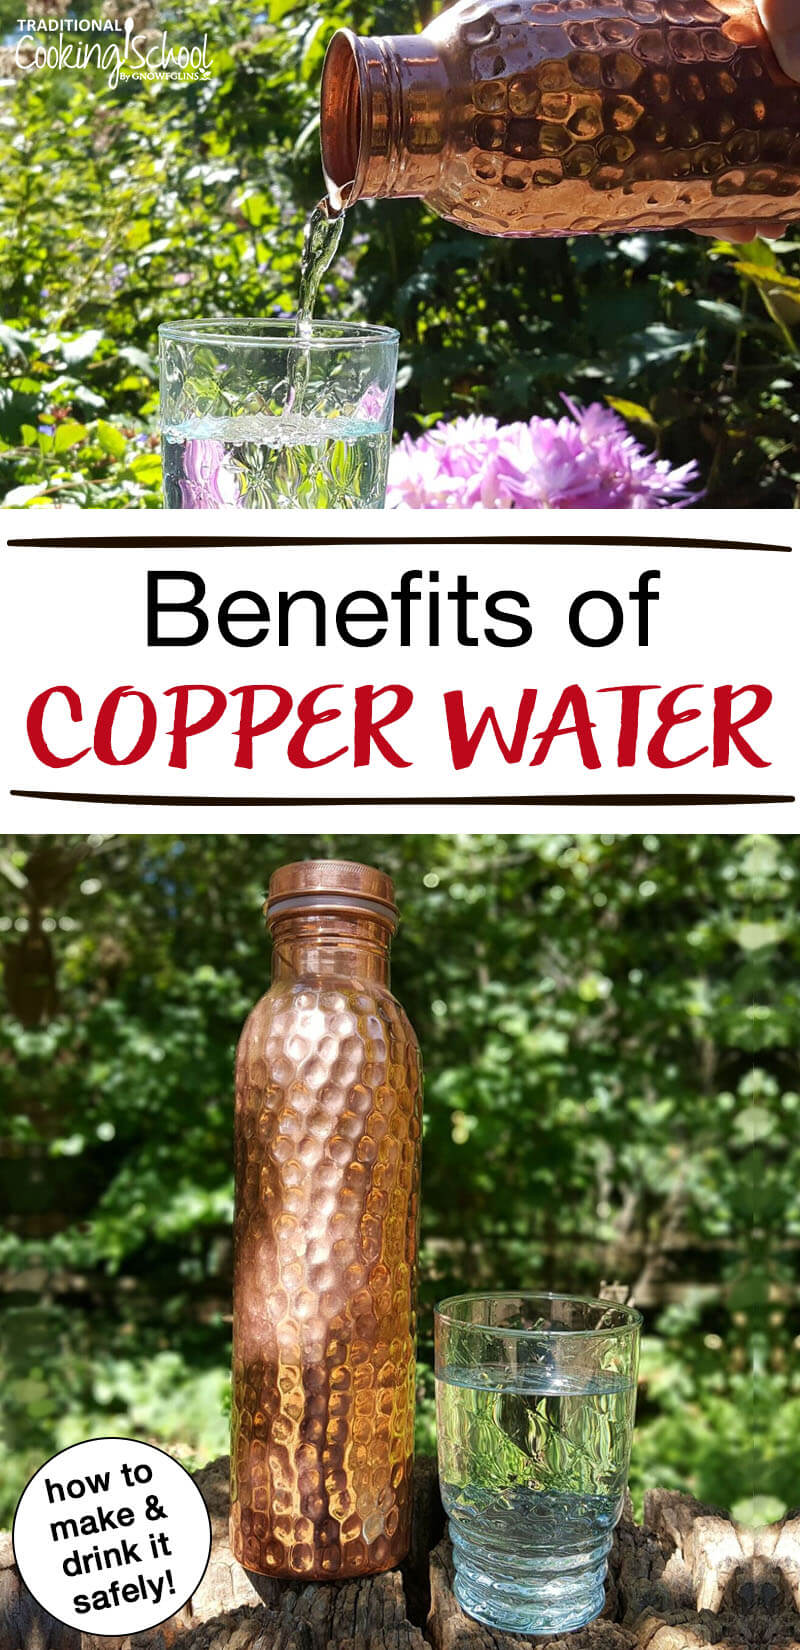 """photo collage of copper water bottle next to a glass jar of water outside with text overlay: """"Benefits of Copper Water"""""""